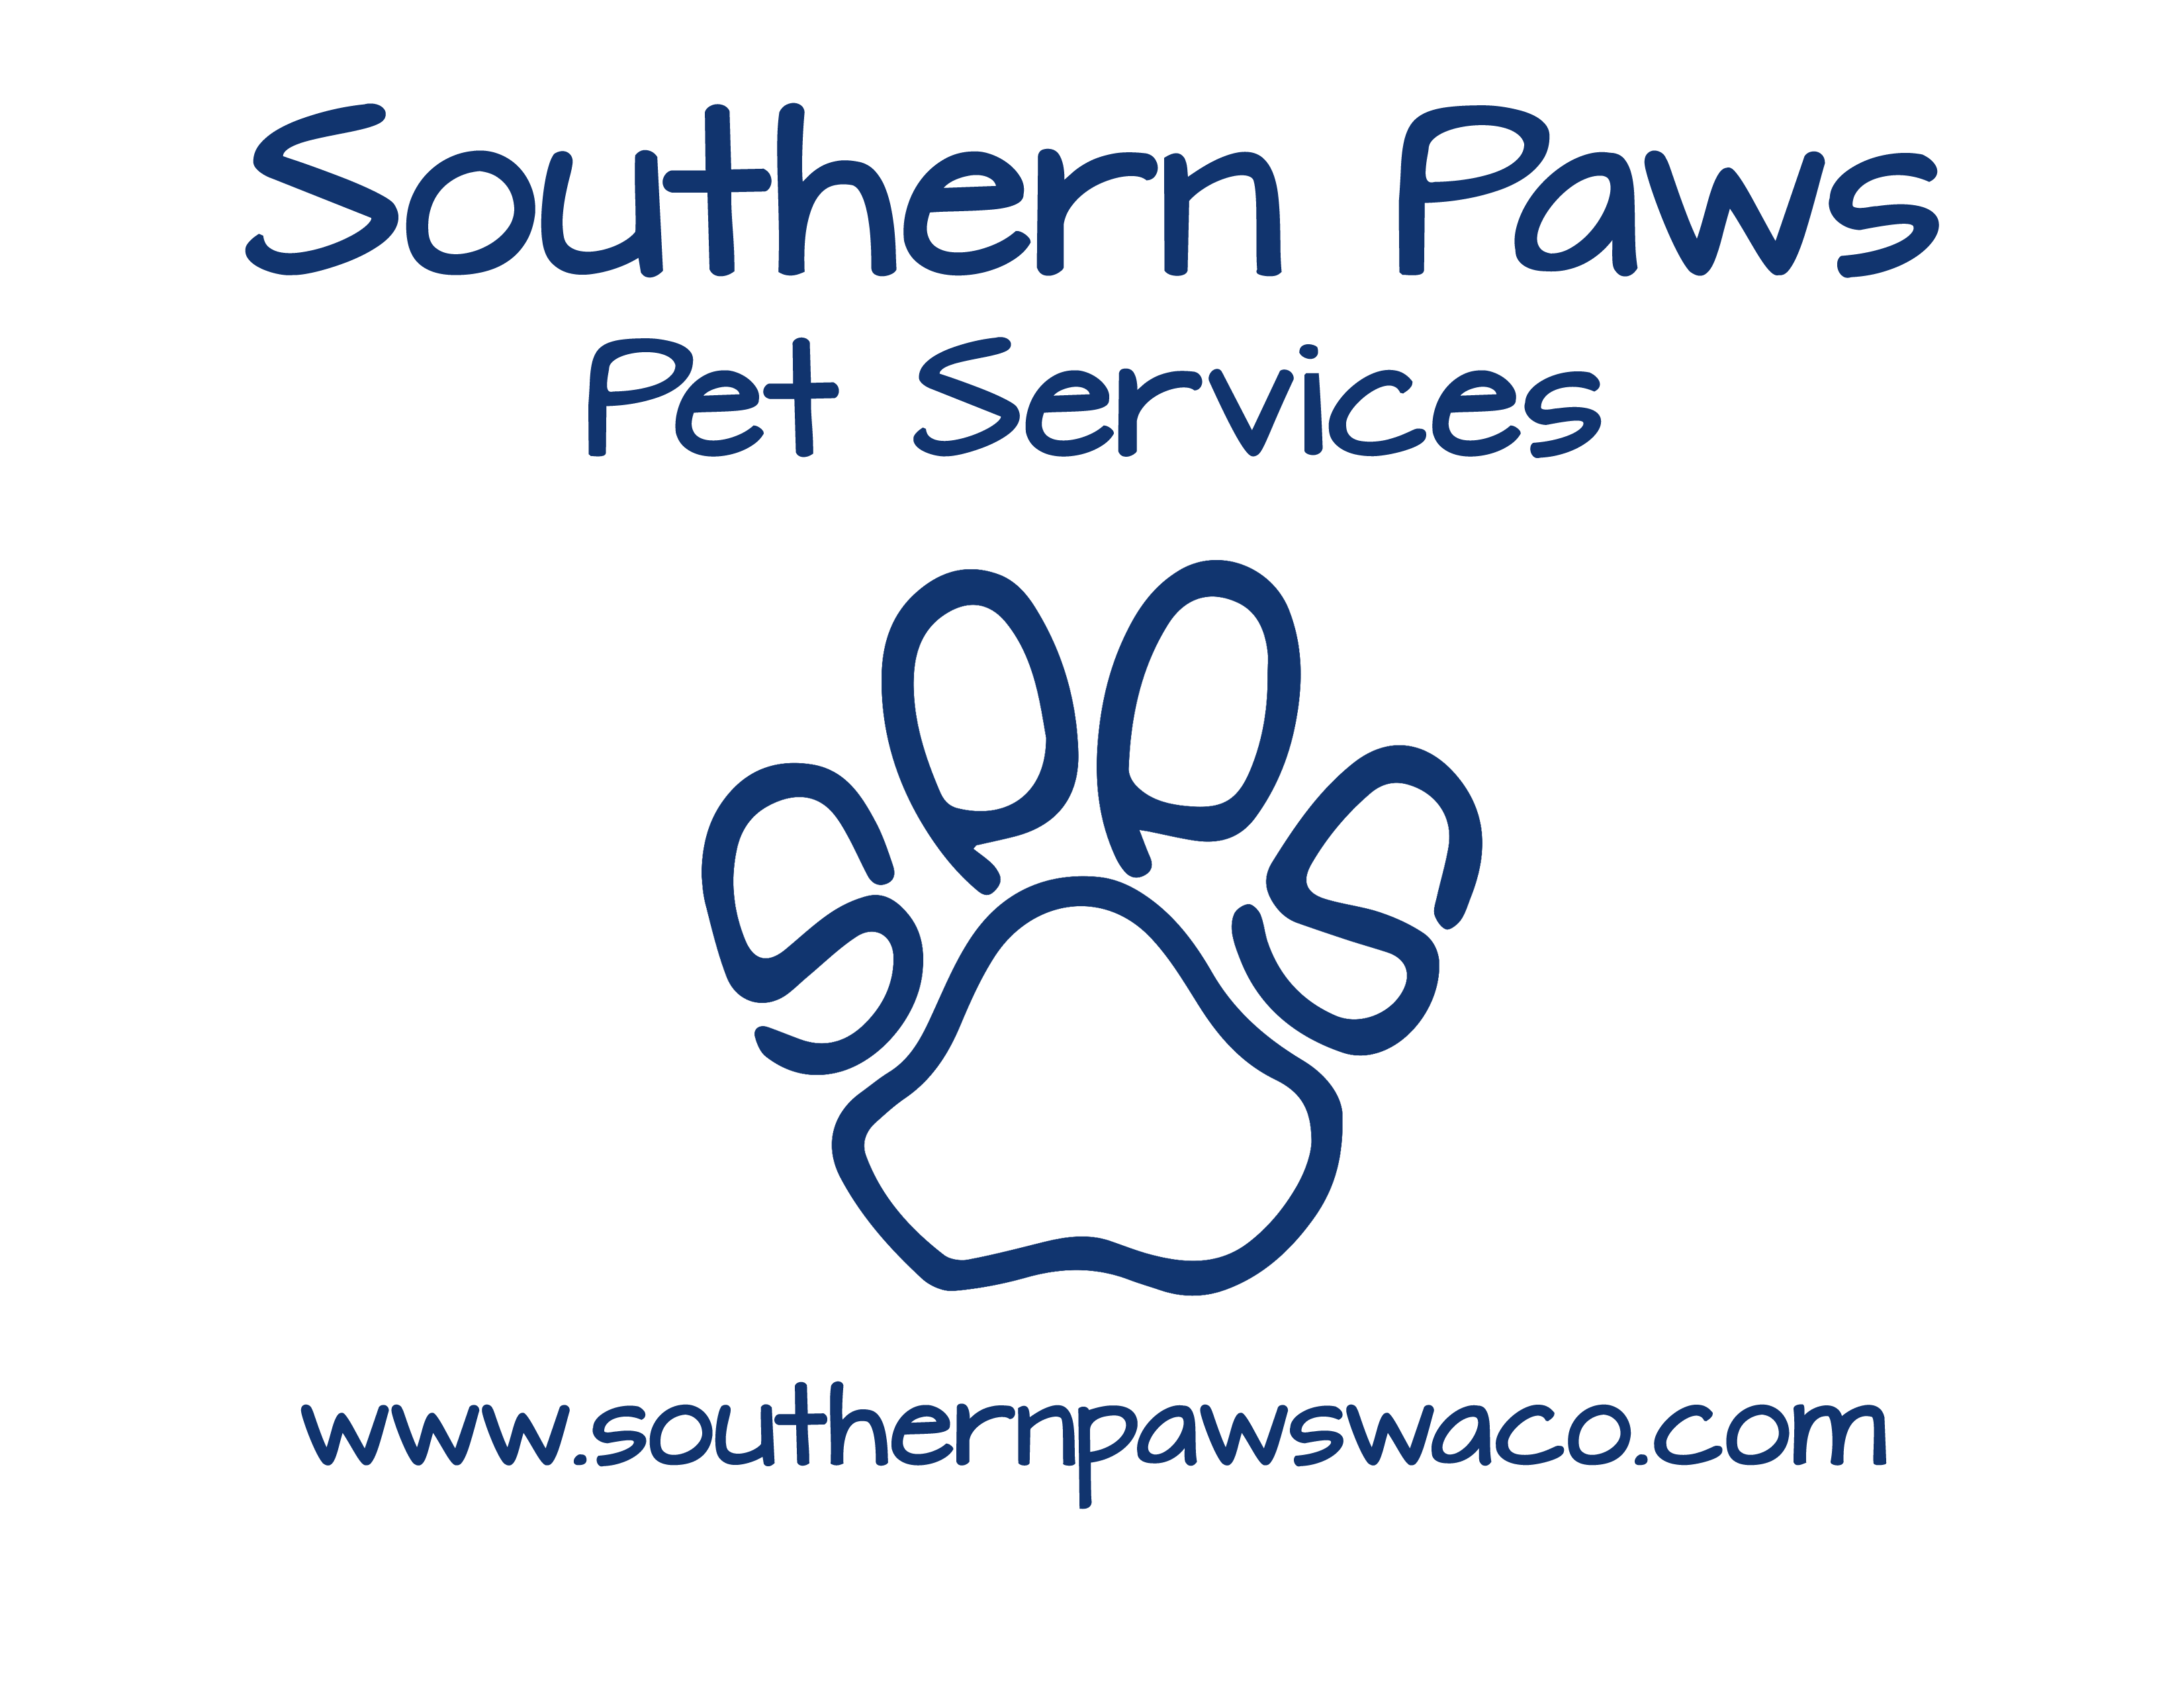 Southern Paws Pet Services